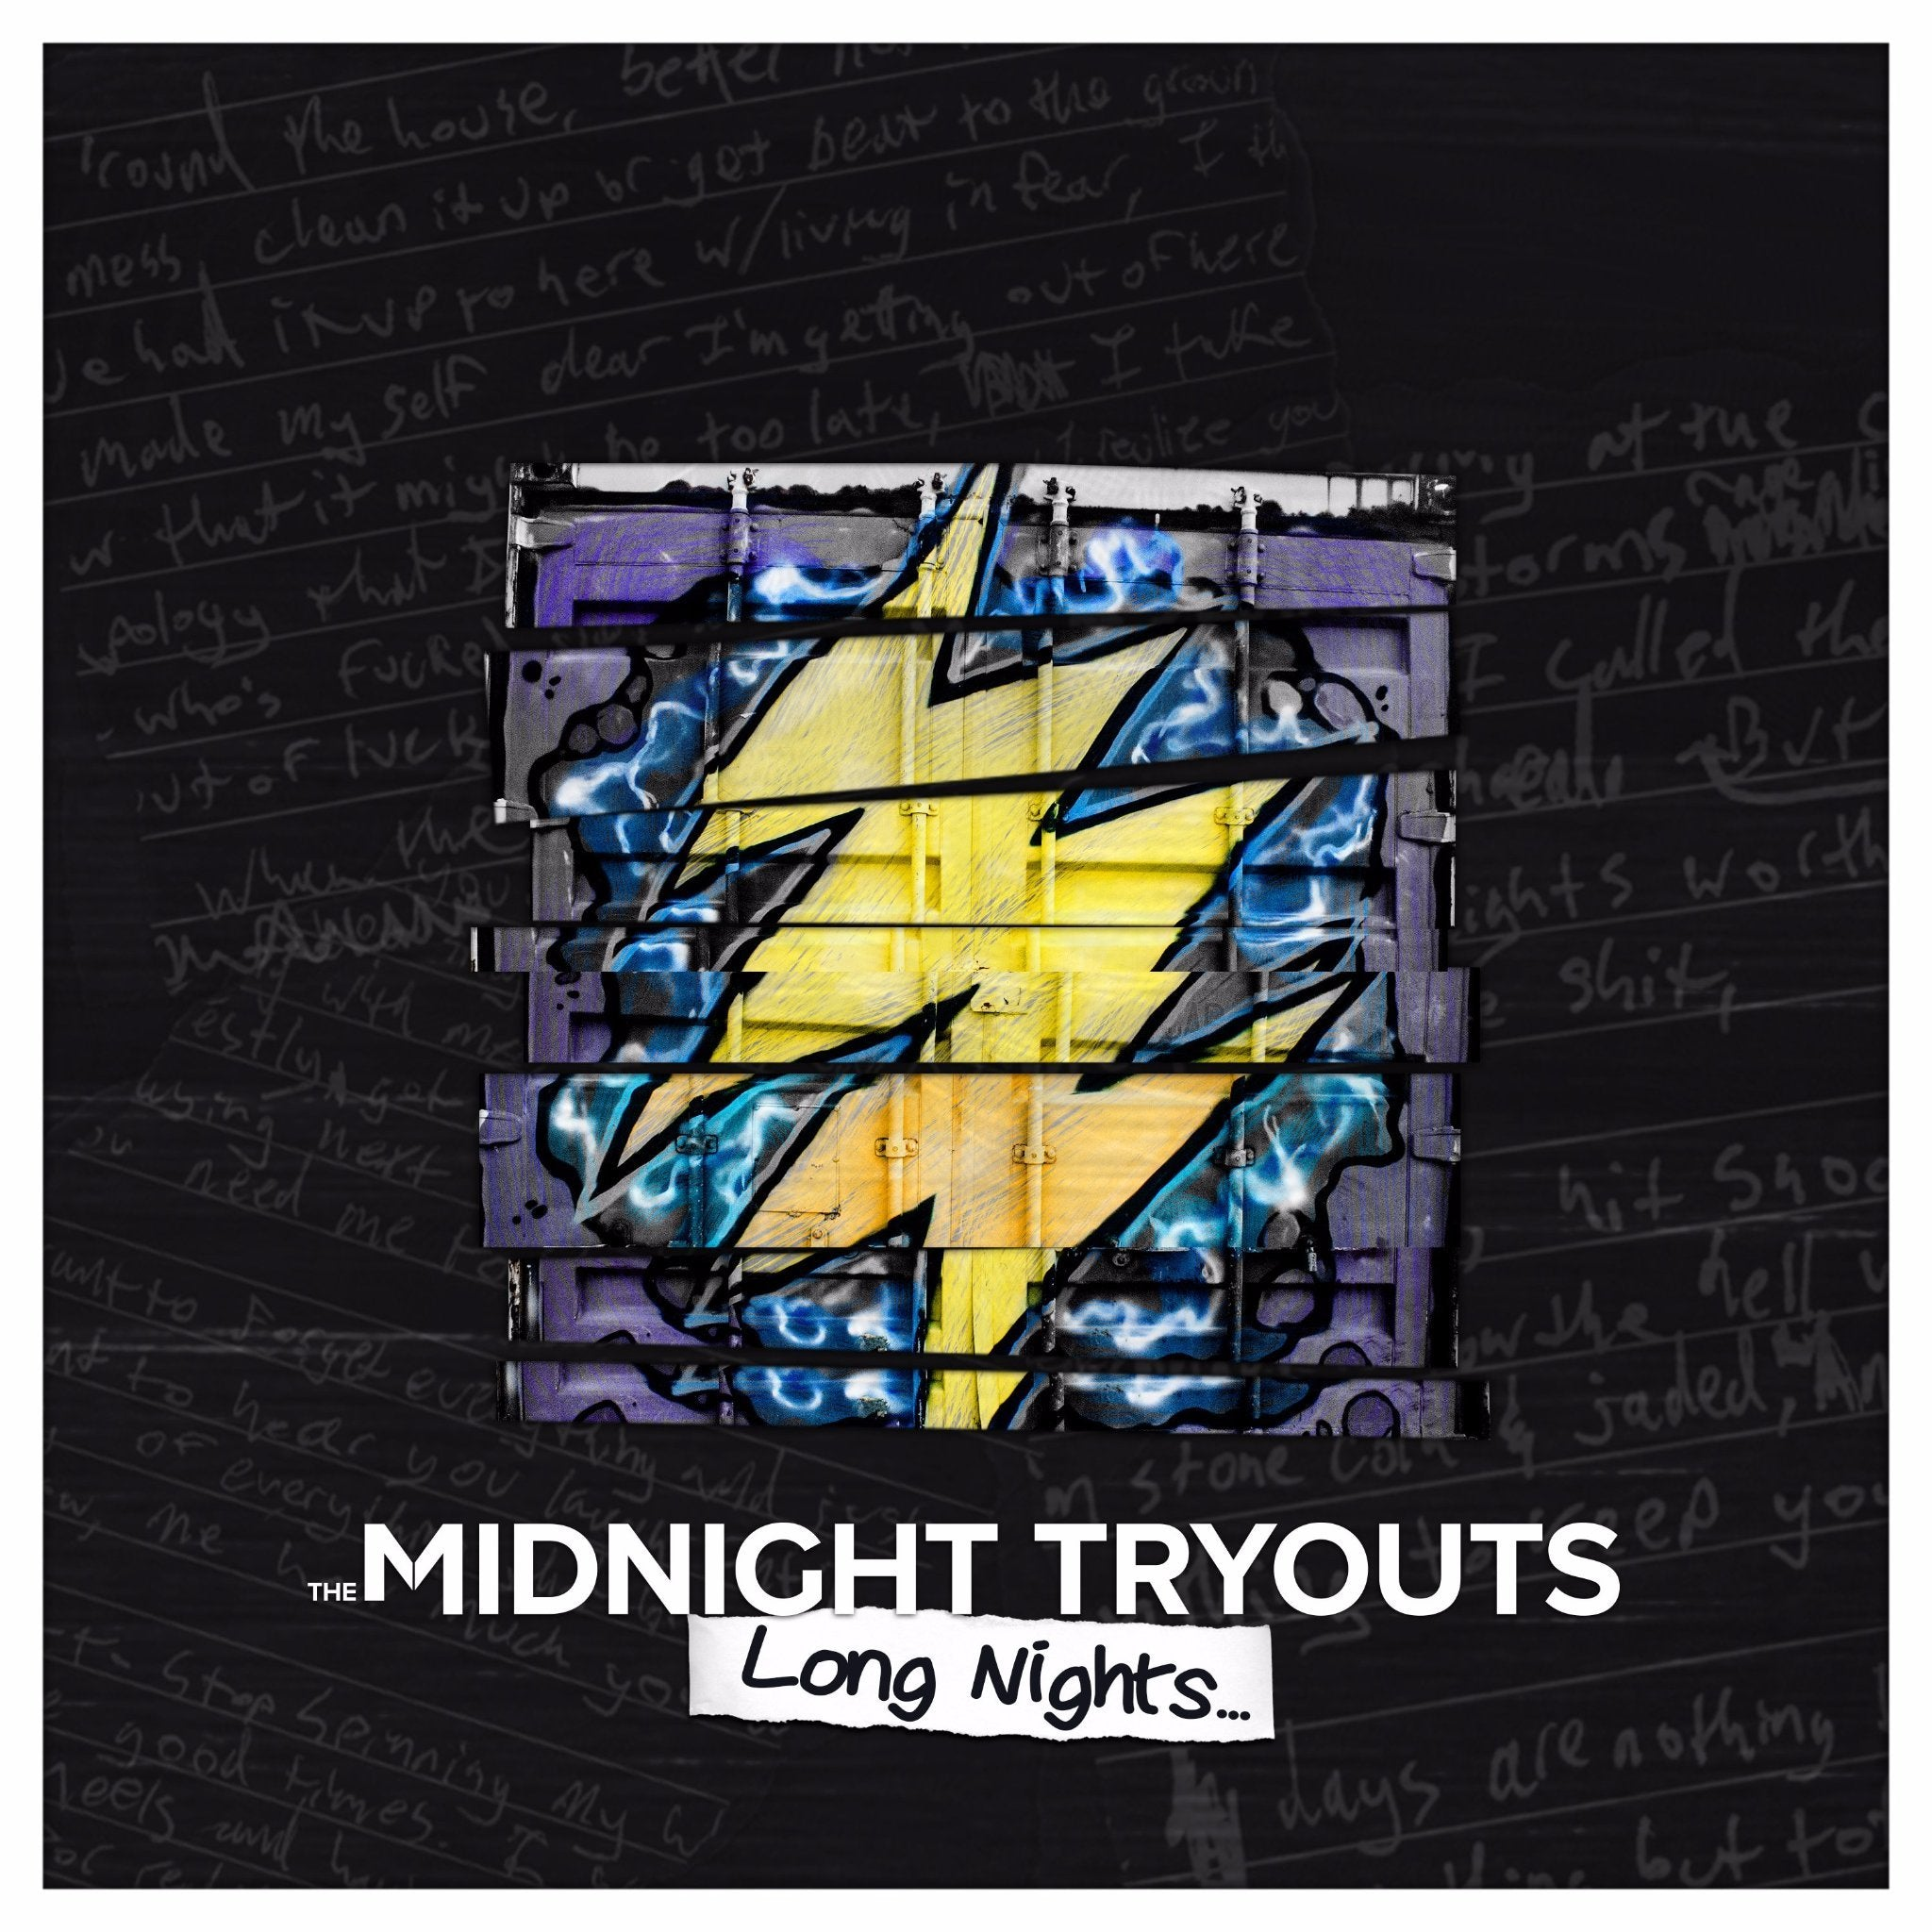 The Midnight Tryouts - Long Nights... EP Album Art